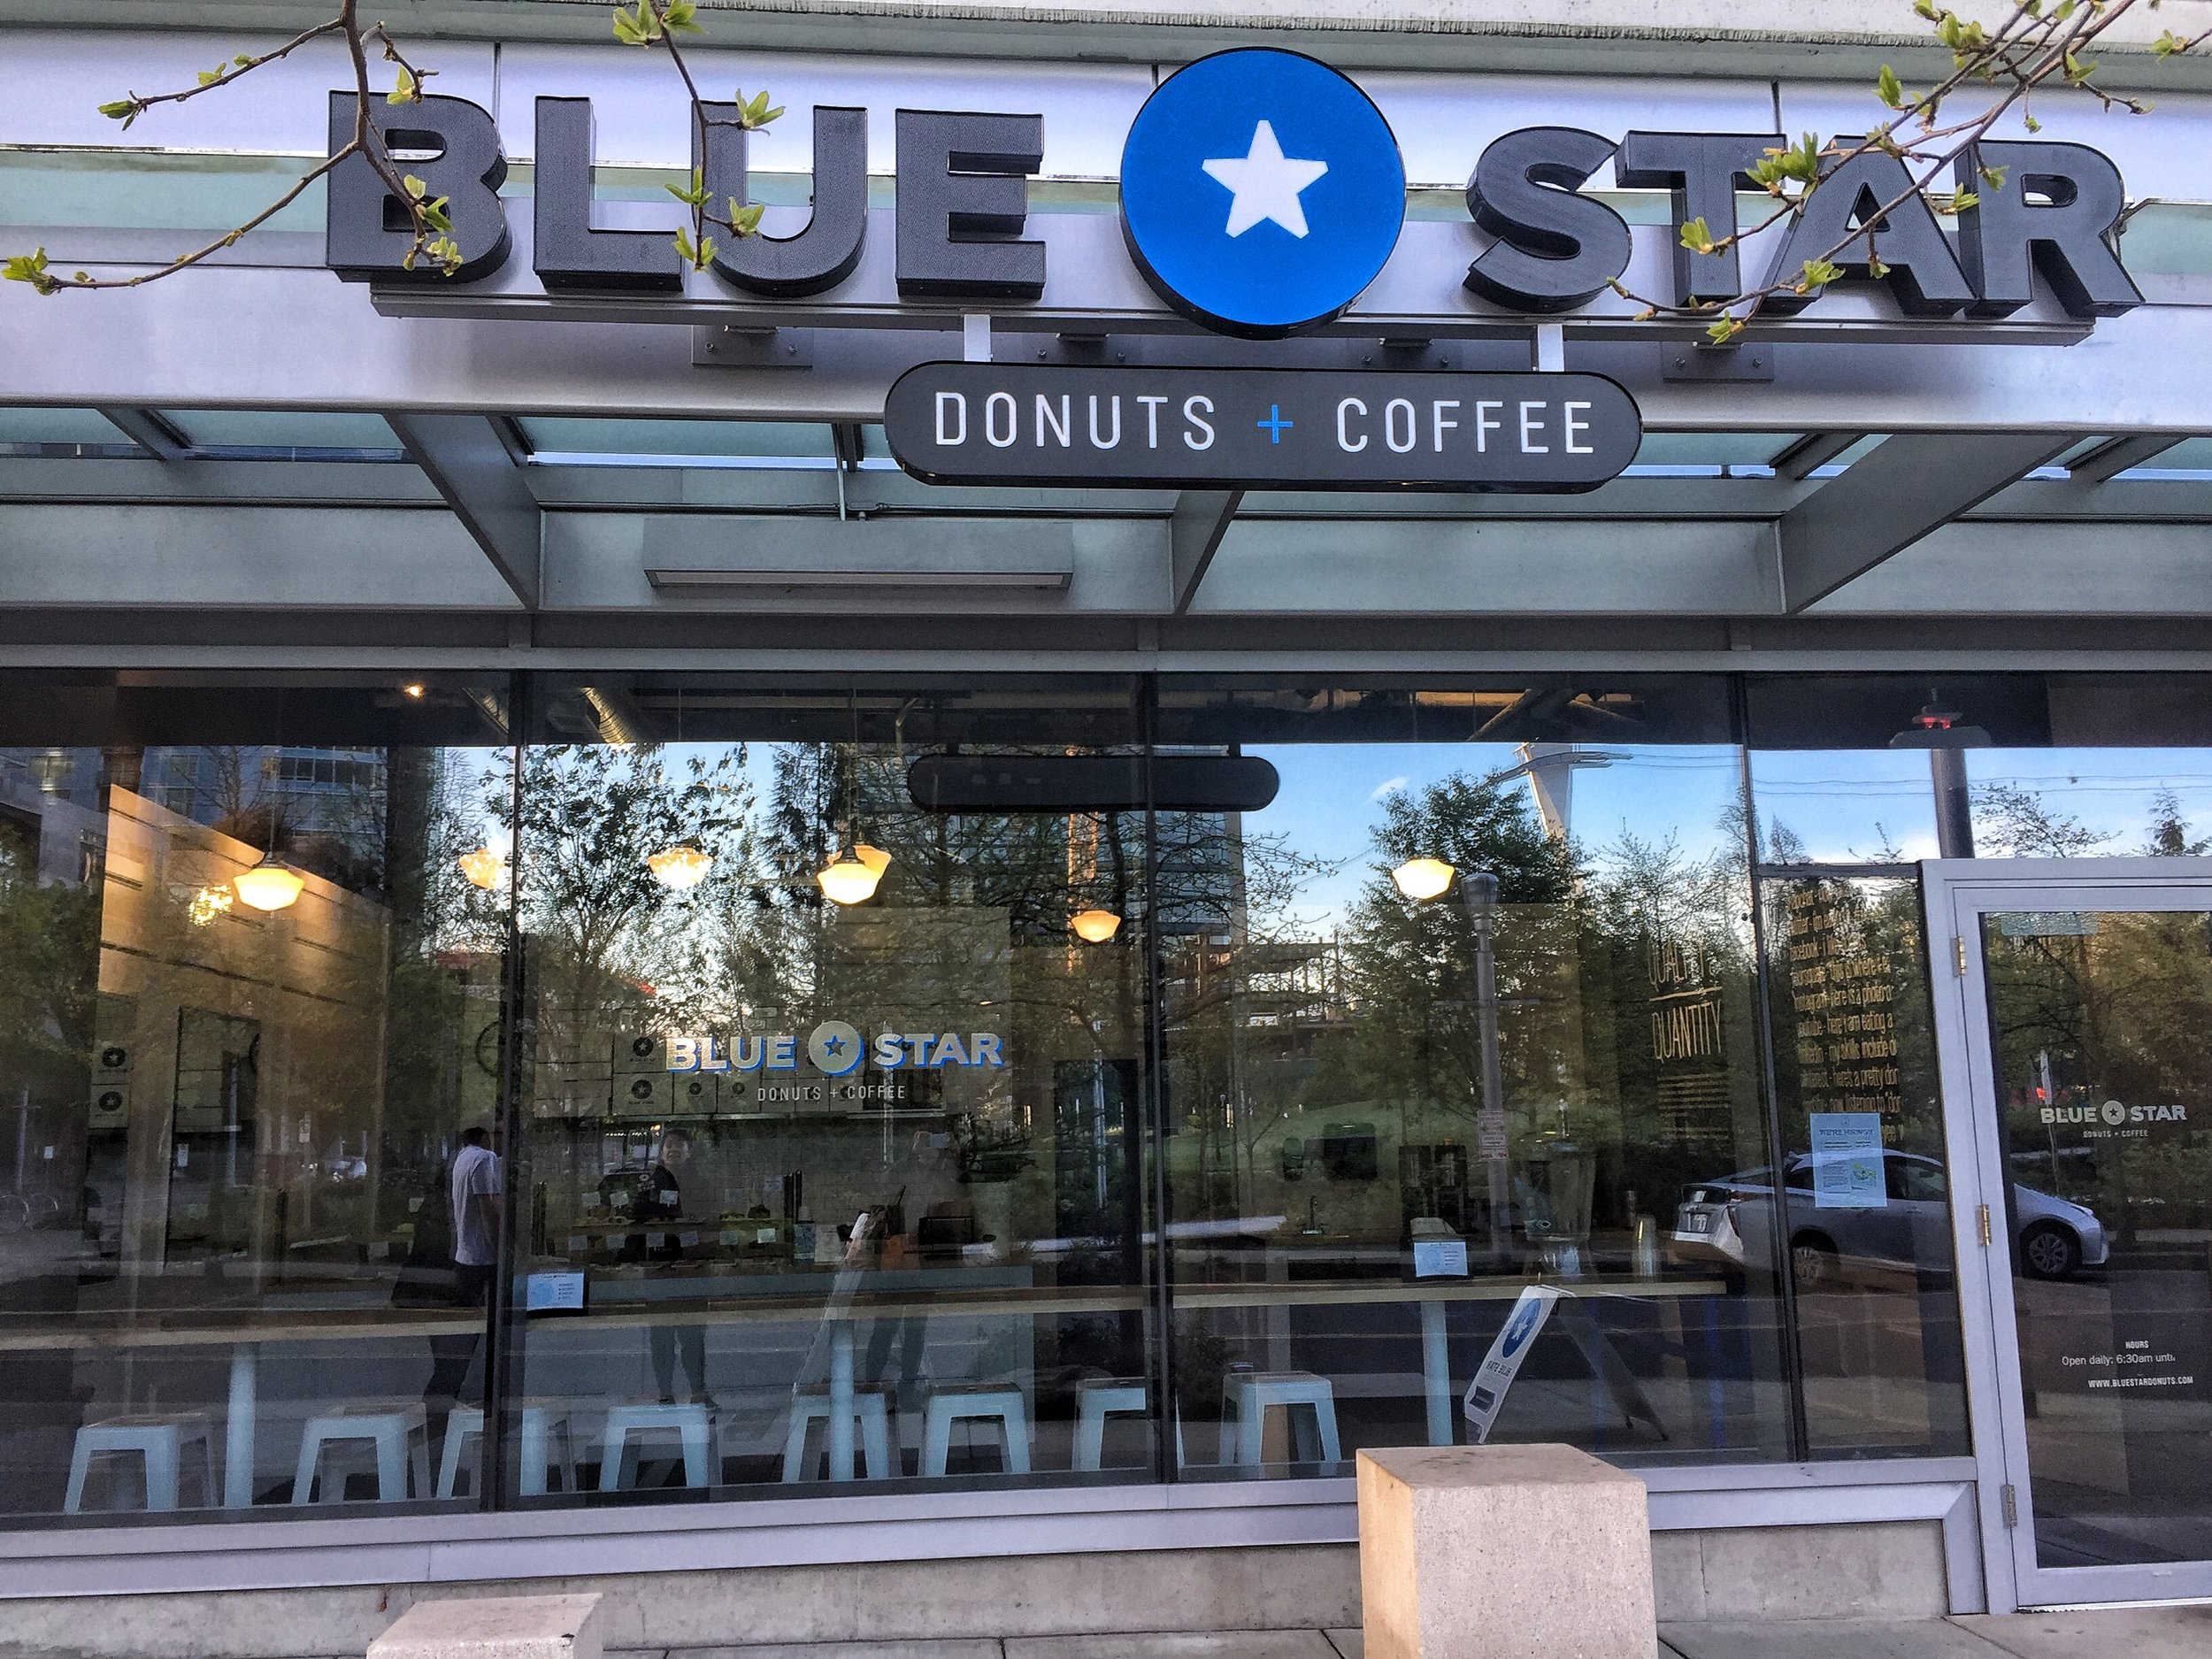 Blue Star Donuts South Waterfront. They open early at 6:30AM so stop by before starting your day exploring Portland. No line and fresh donuts.